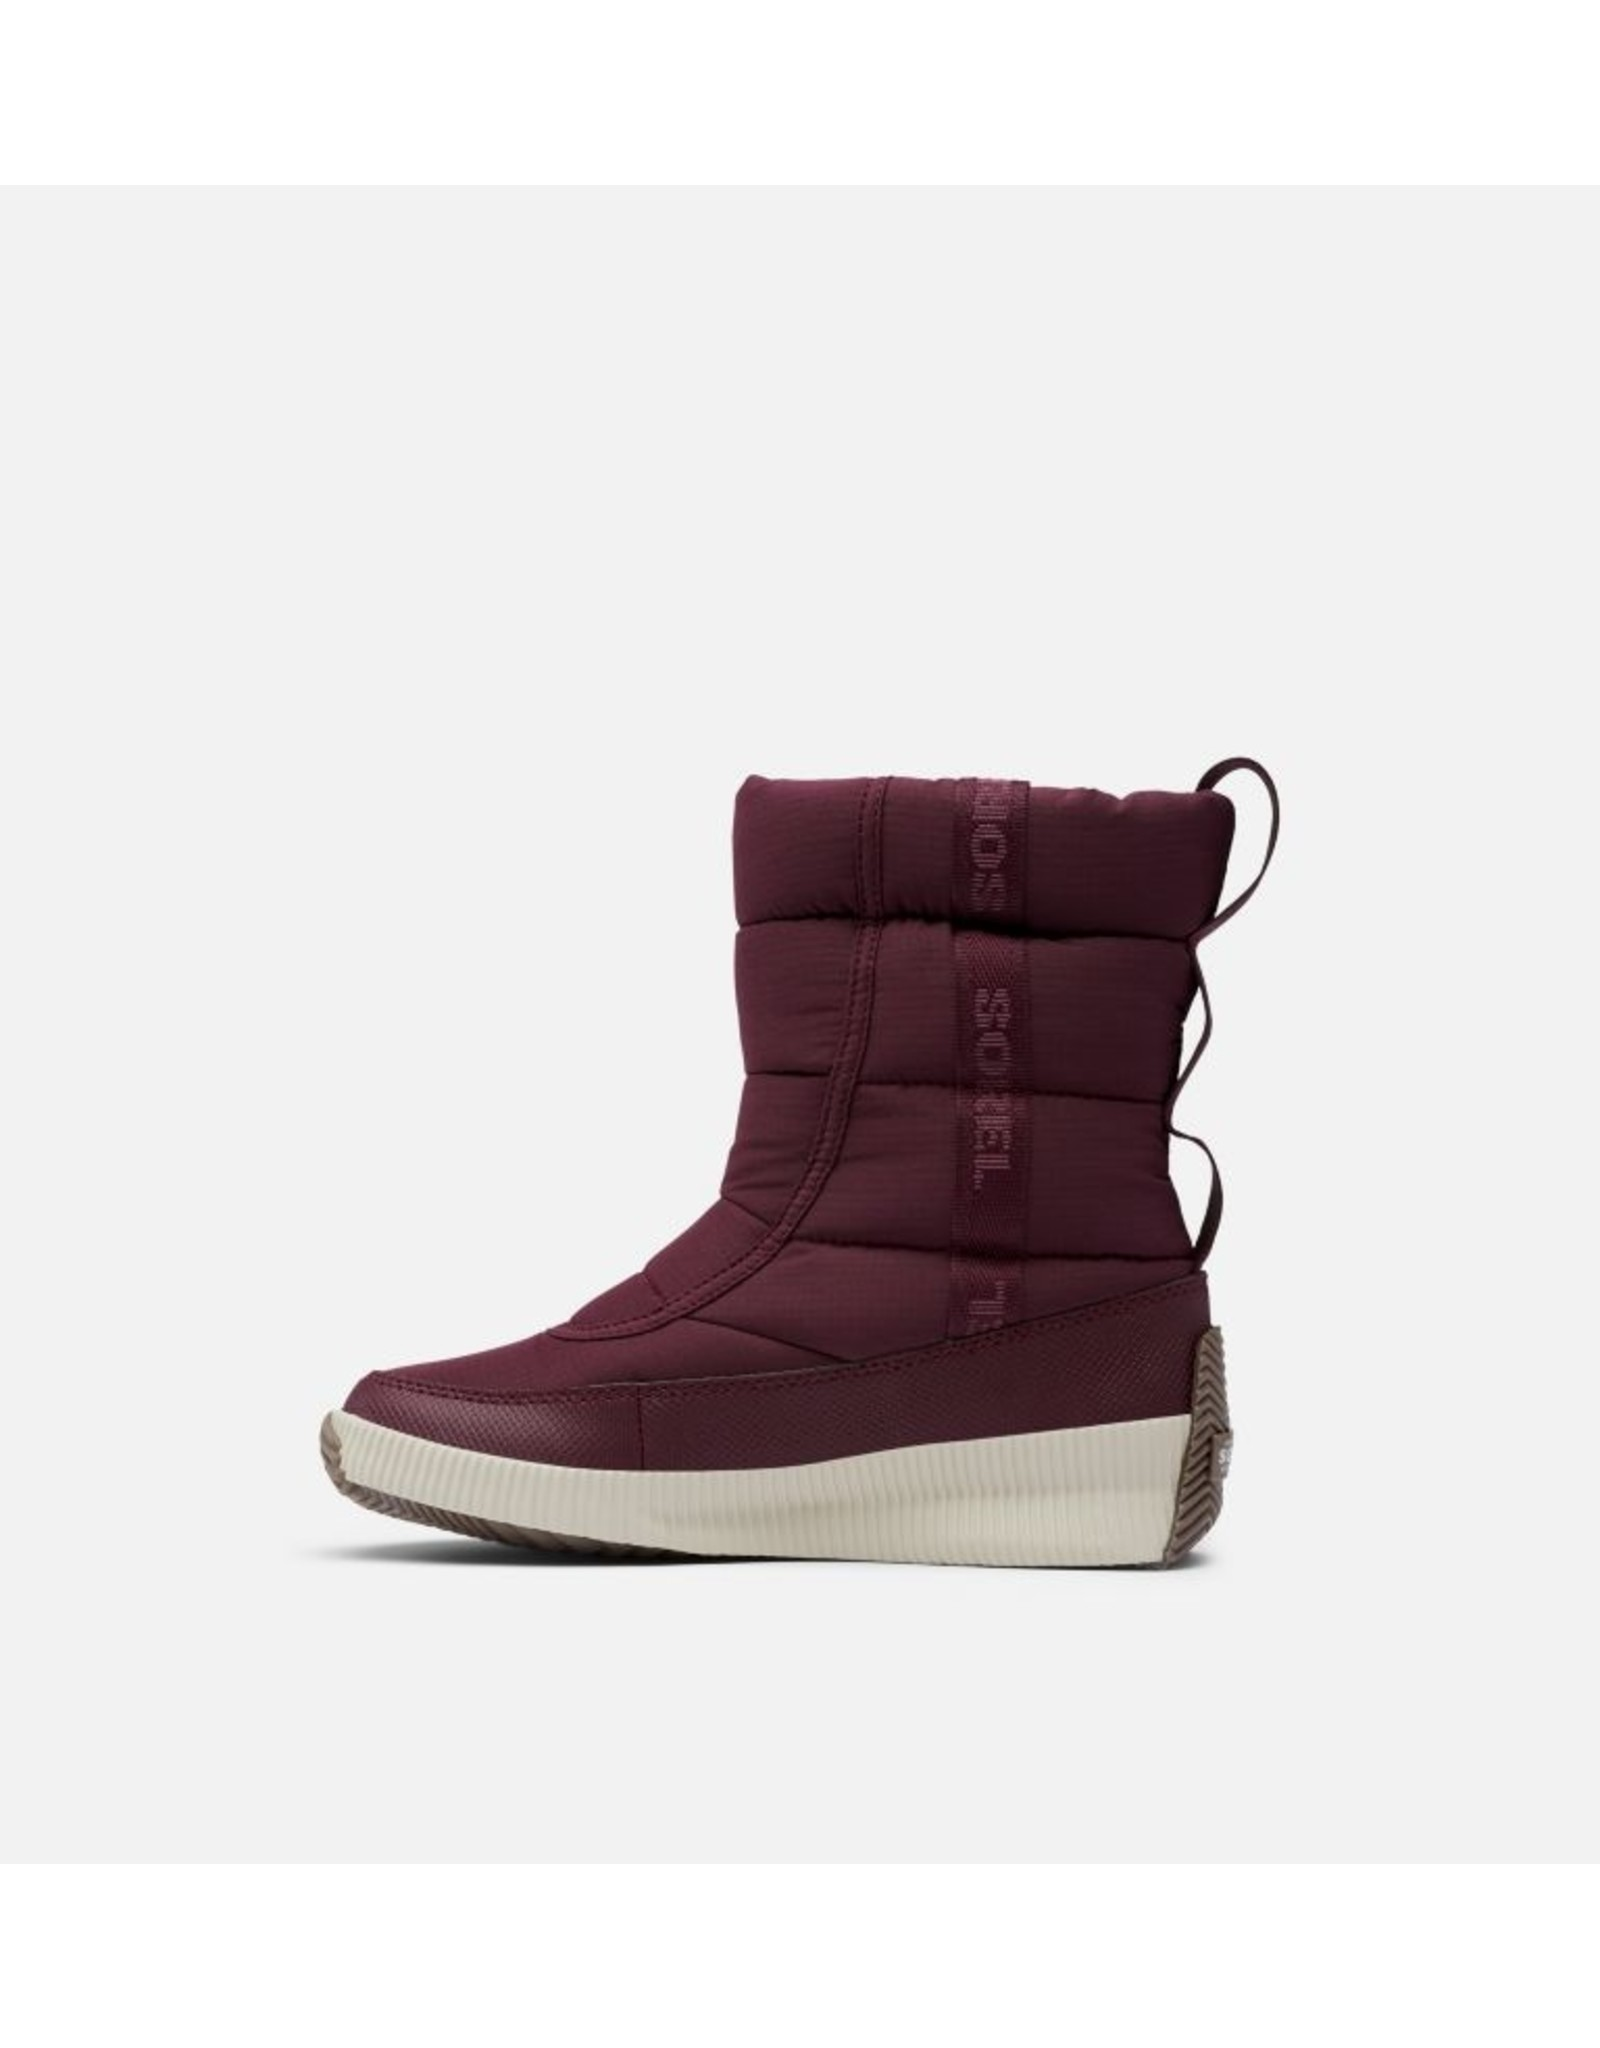 SOREL WOMEN'S OUT N ABOUT PUFFY MID BOOT-EPIC PLUM